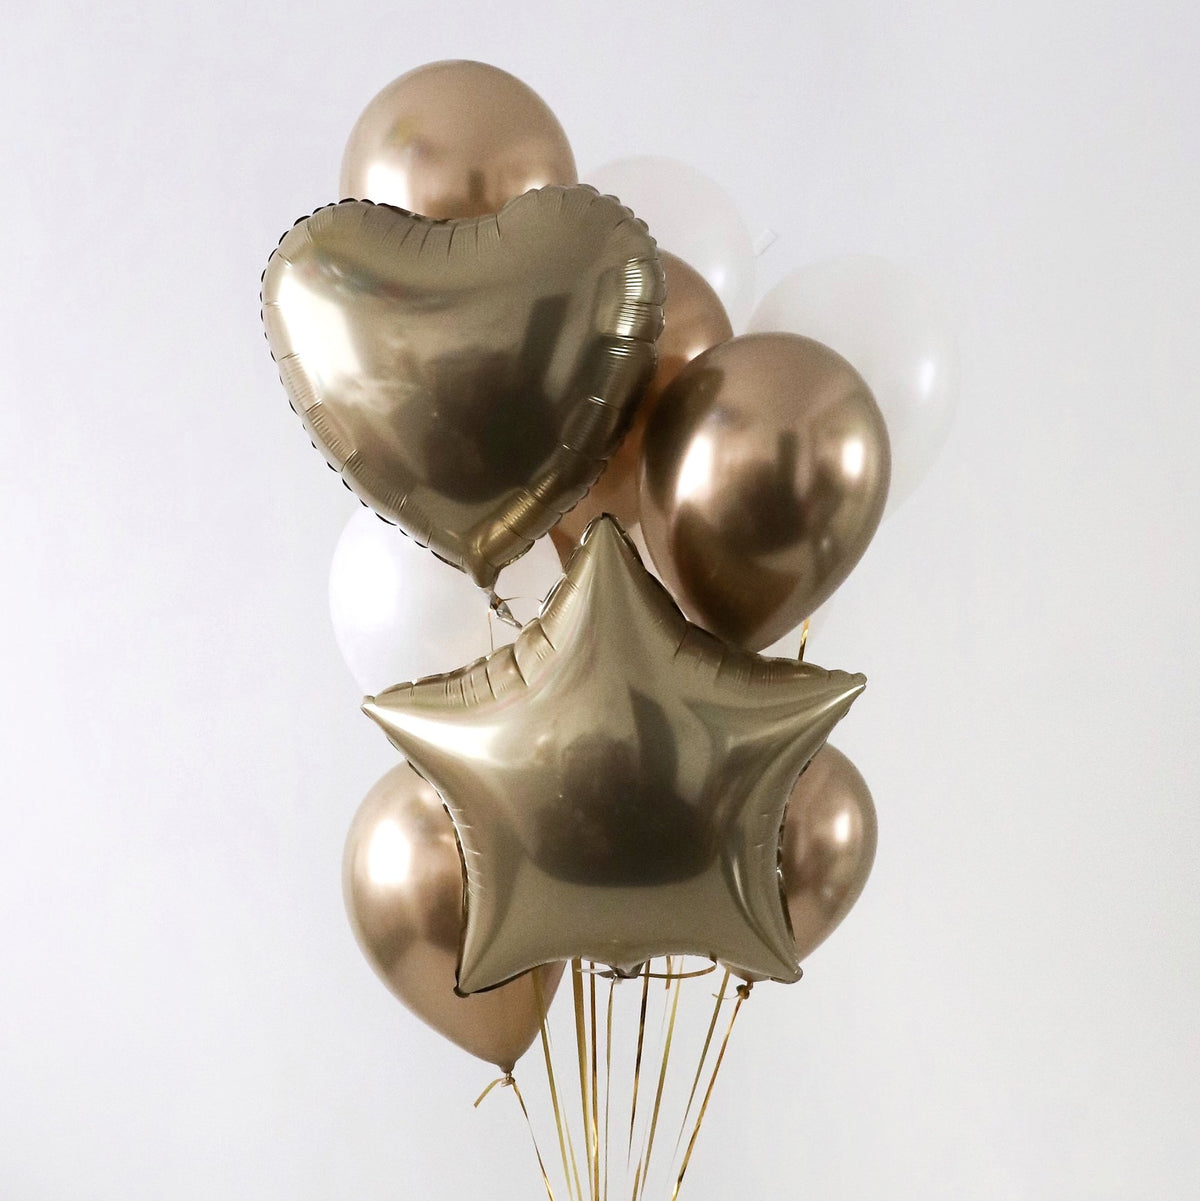 Goldiluxe Balloon Bunch